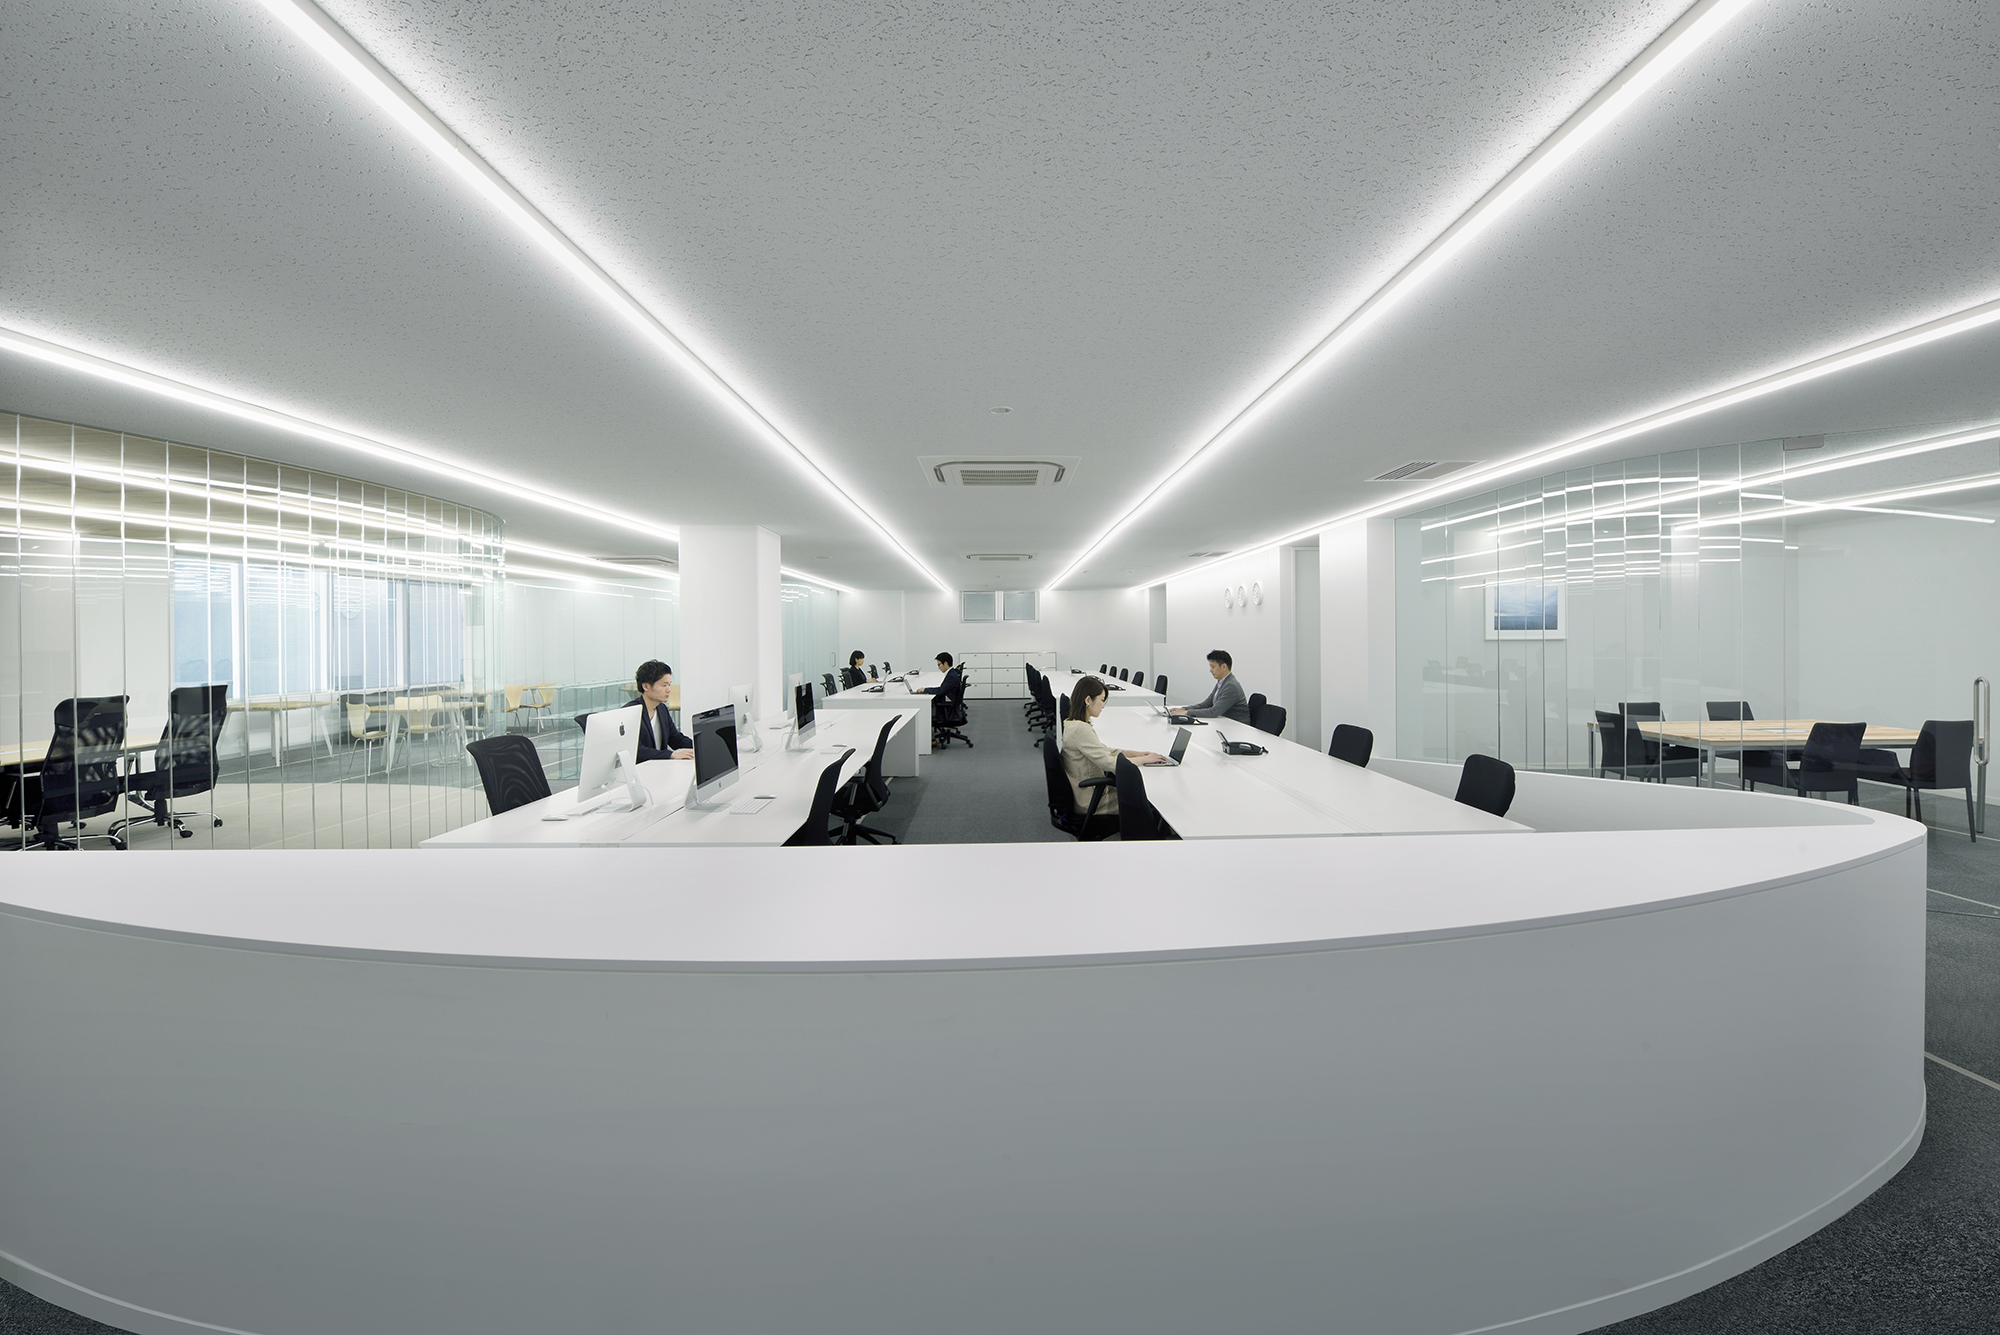 job security TBM OFFICE by Clouds Architecture Office, Tokyo, Japan